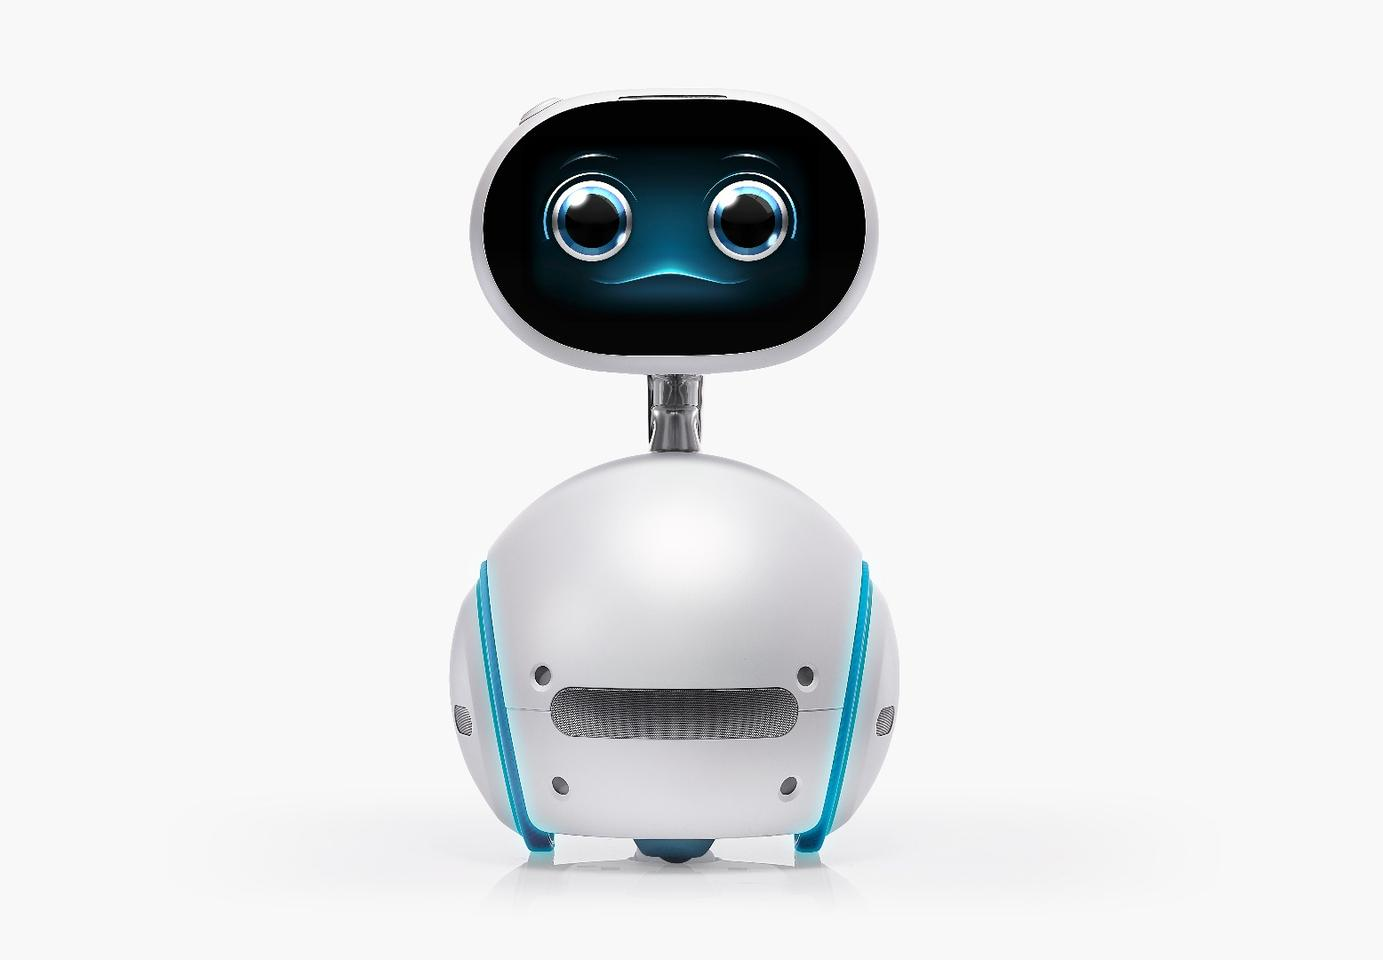 The Zenbo can understand spoken commands